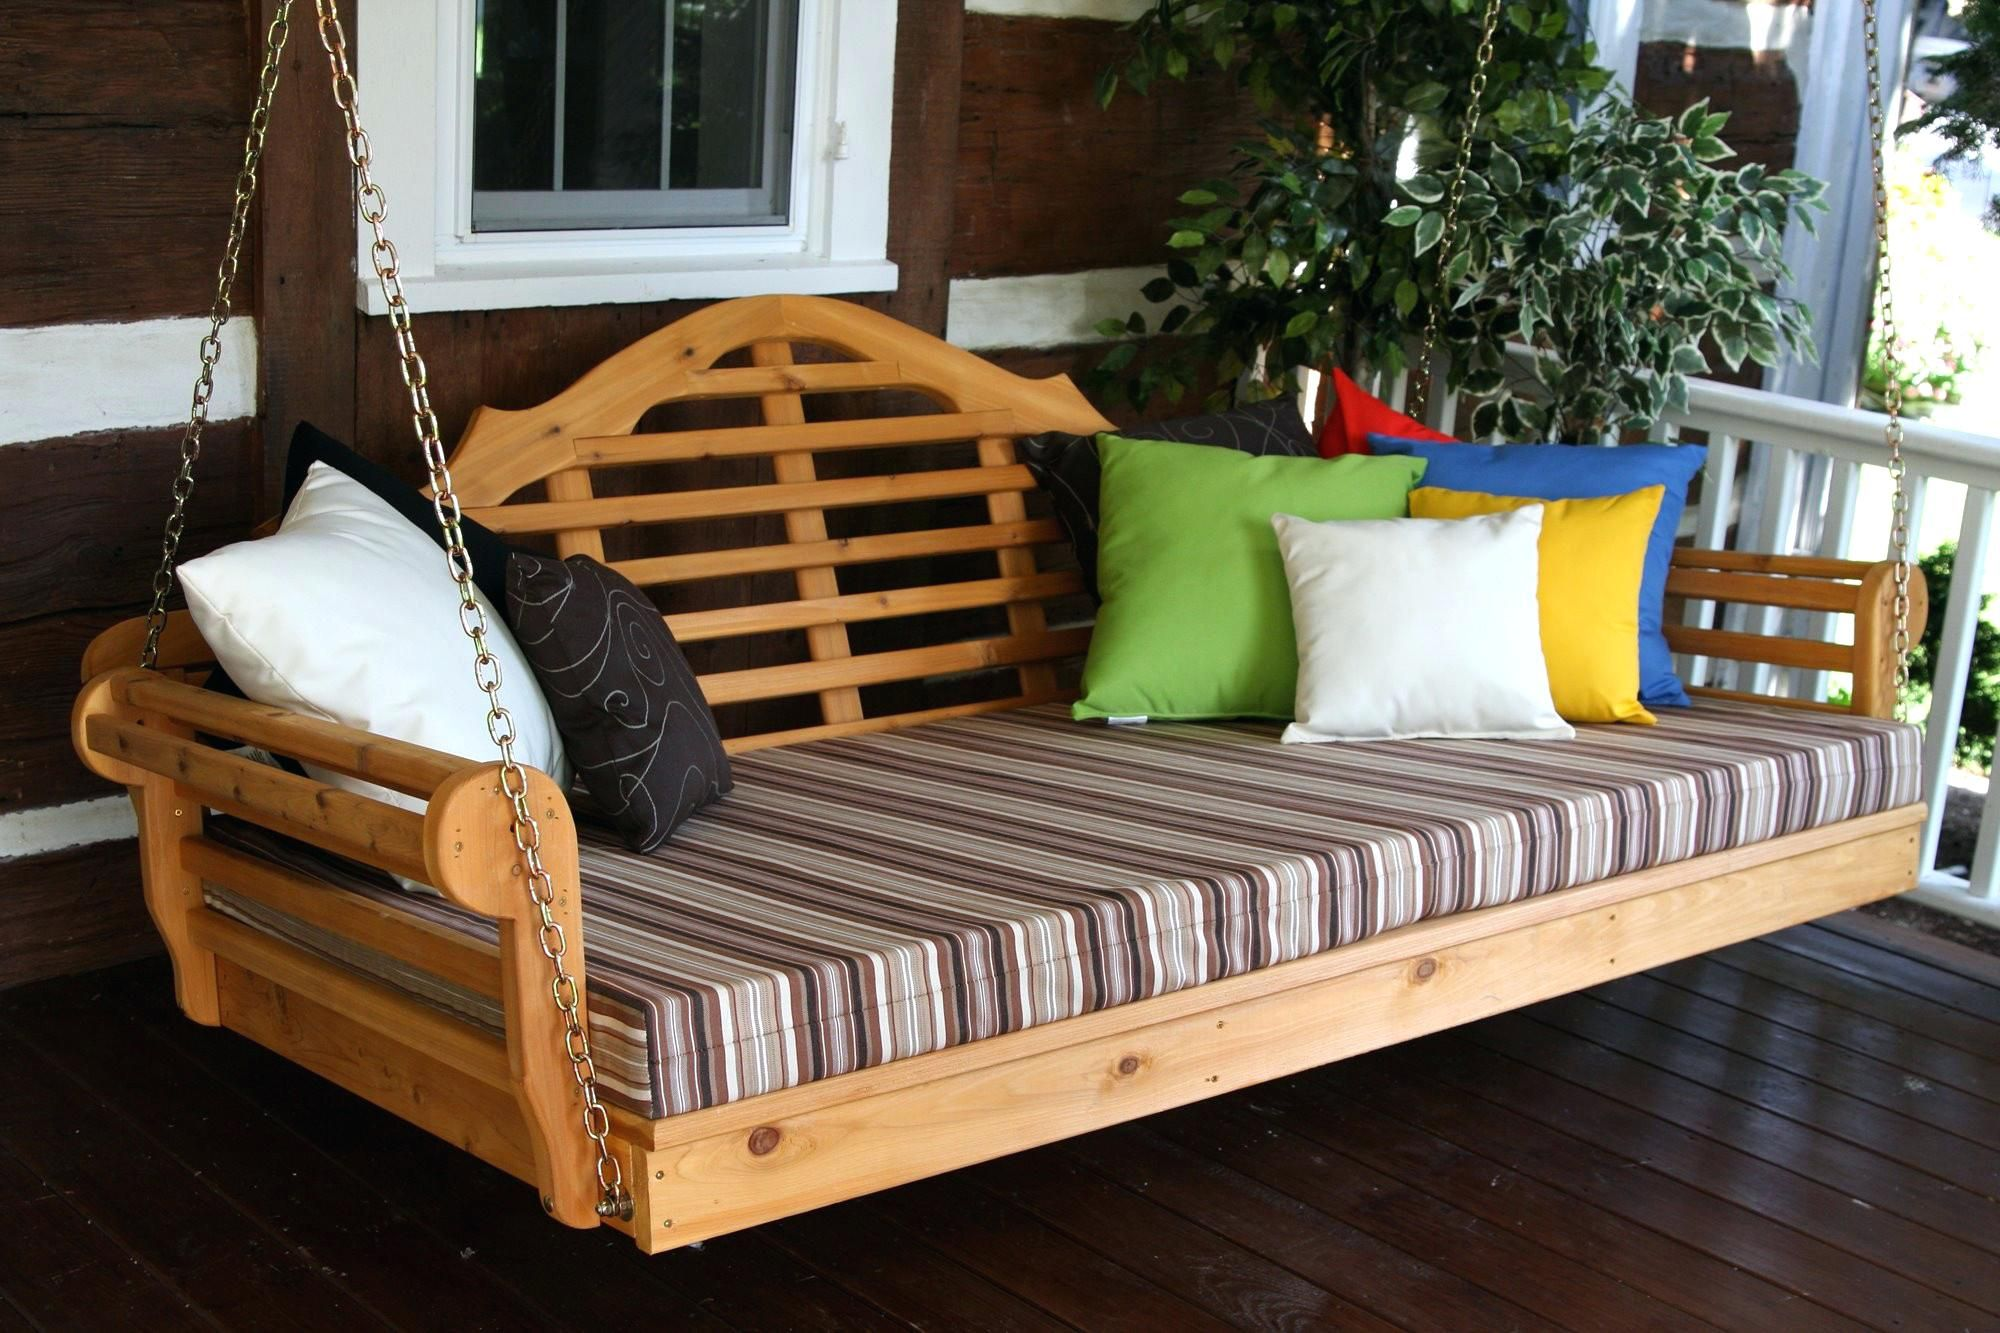 Porch Swing Beds Atlanta For Diy Bed Plans